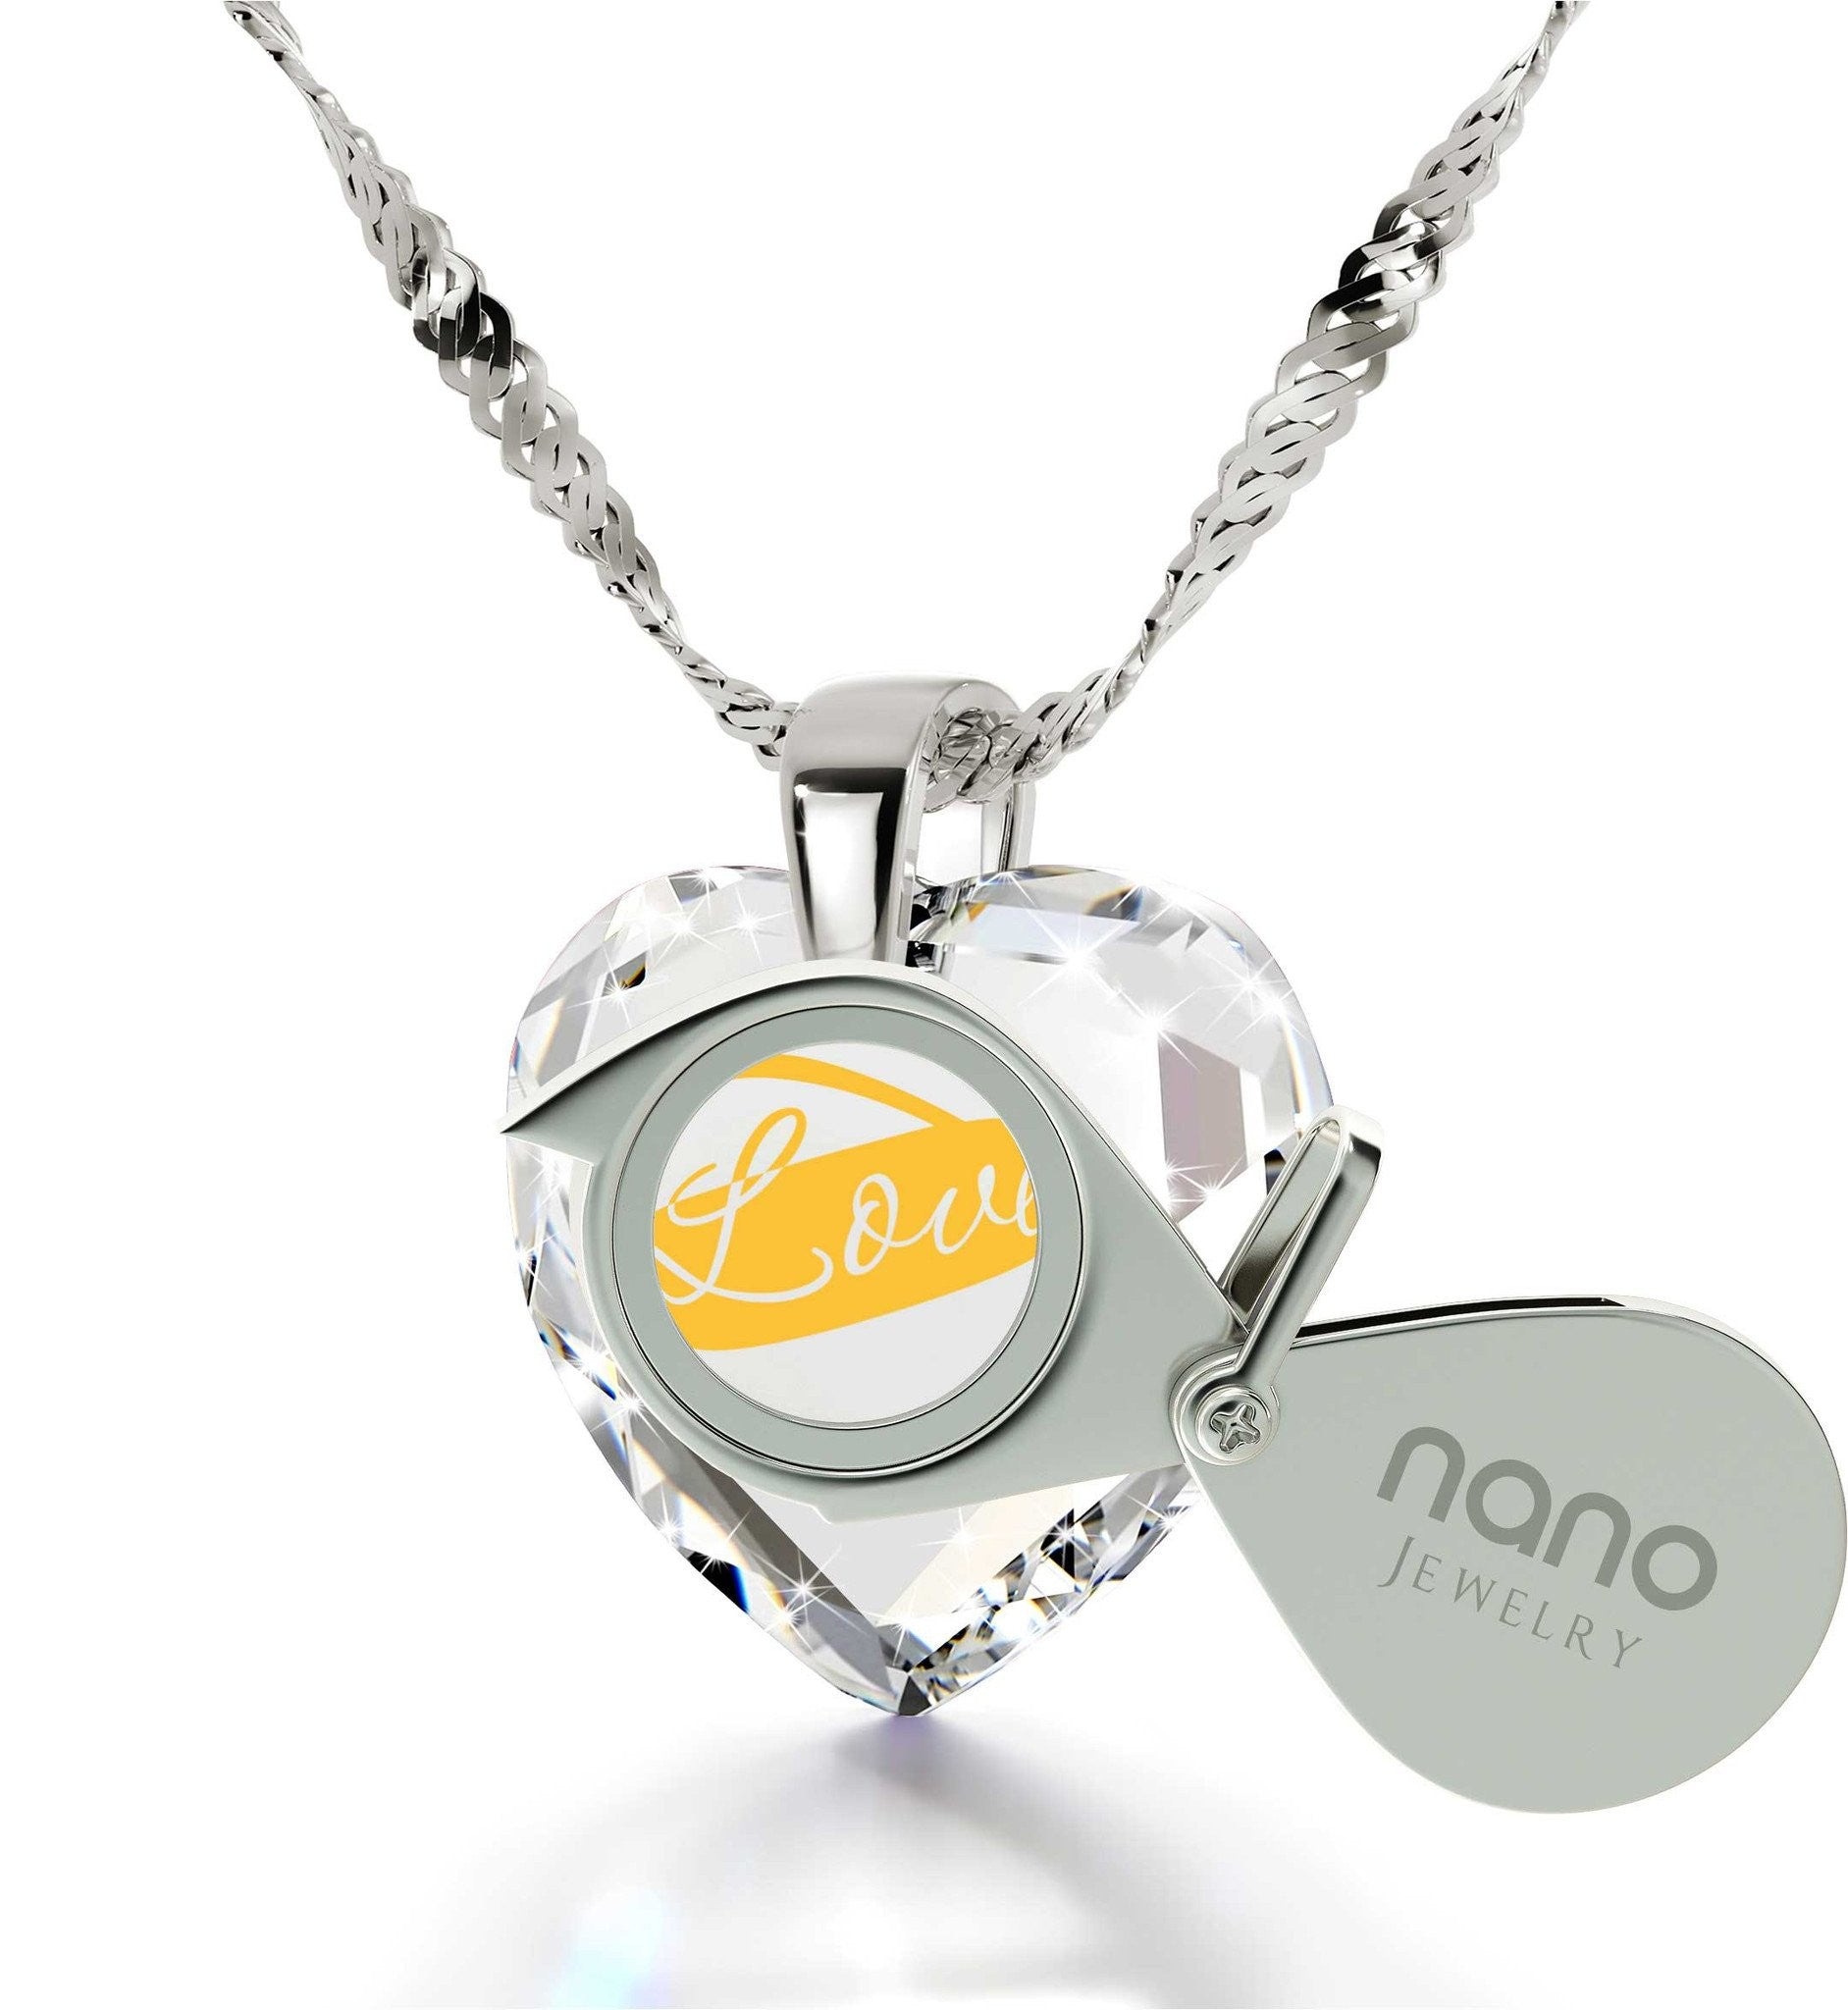 "What to Get Girlfriend for Birthday,""I Love You Infinity"" 24k Imprint,Pure Romance Products, by Nano Jewelry"